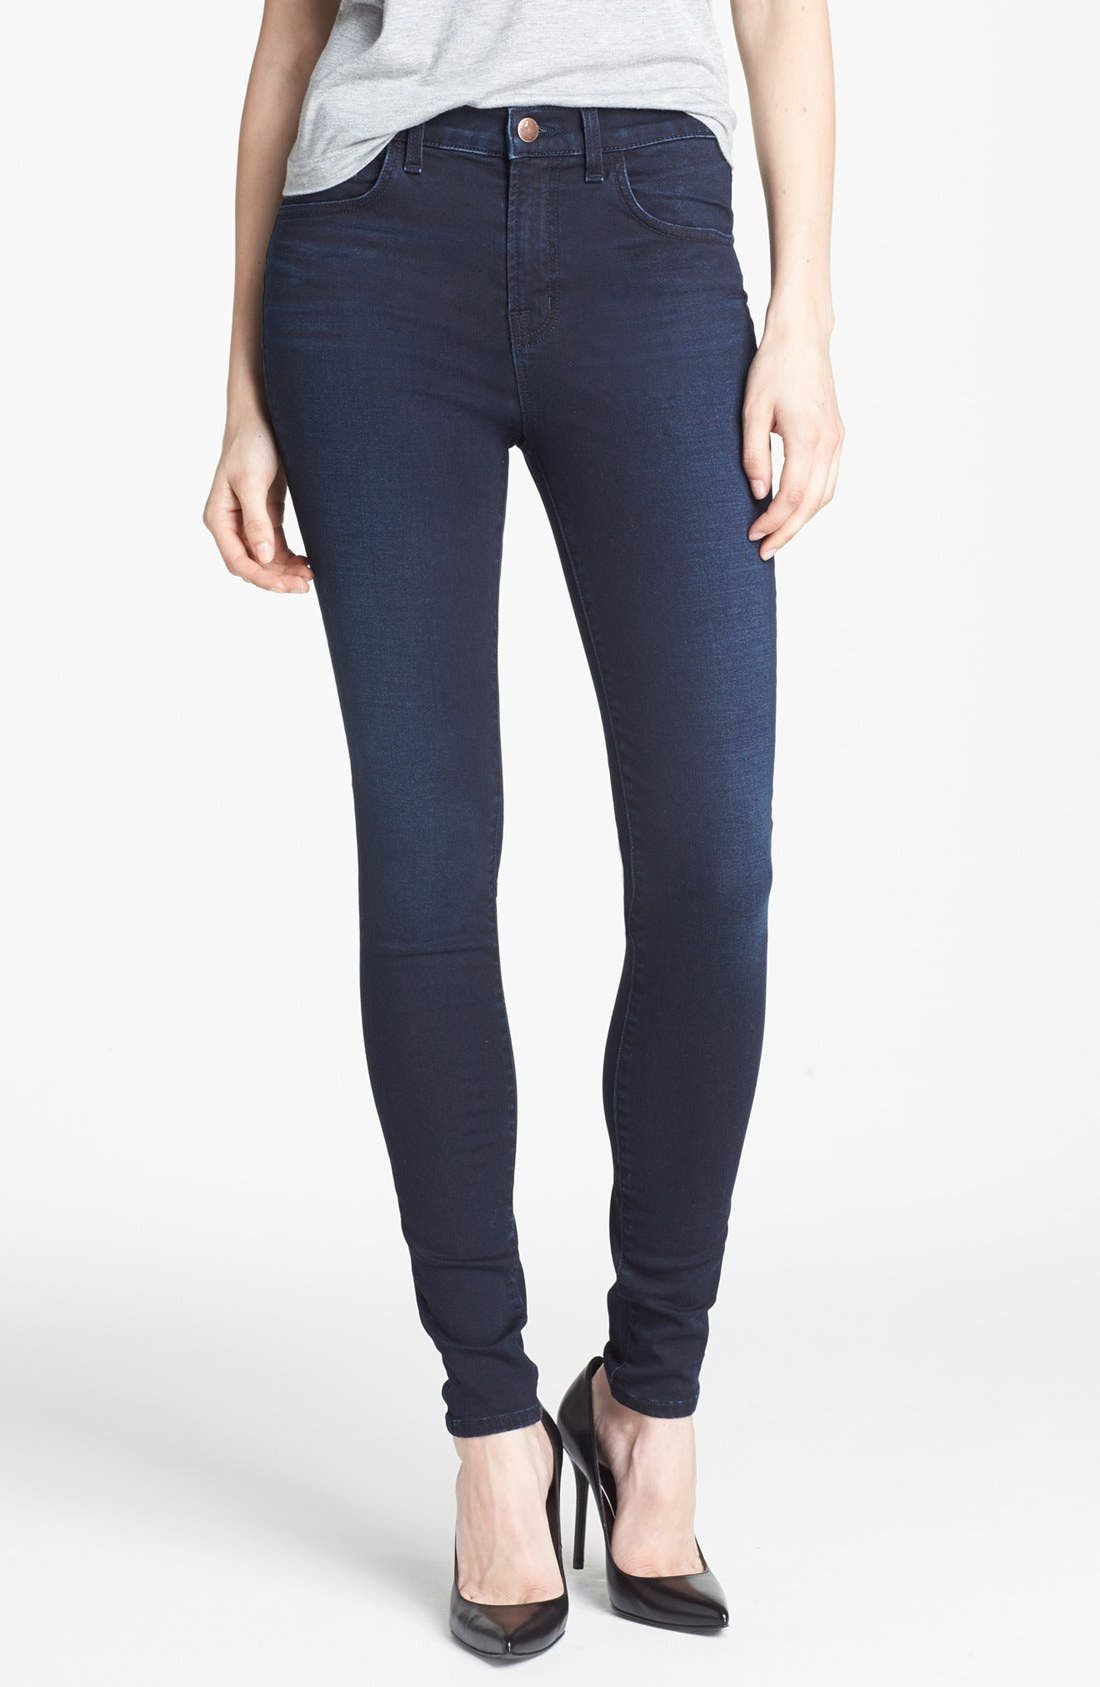 Alternate Image 1 Selected - J Brand '2311 Maria' High Rise Skinny Jeans (Atmosphere)